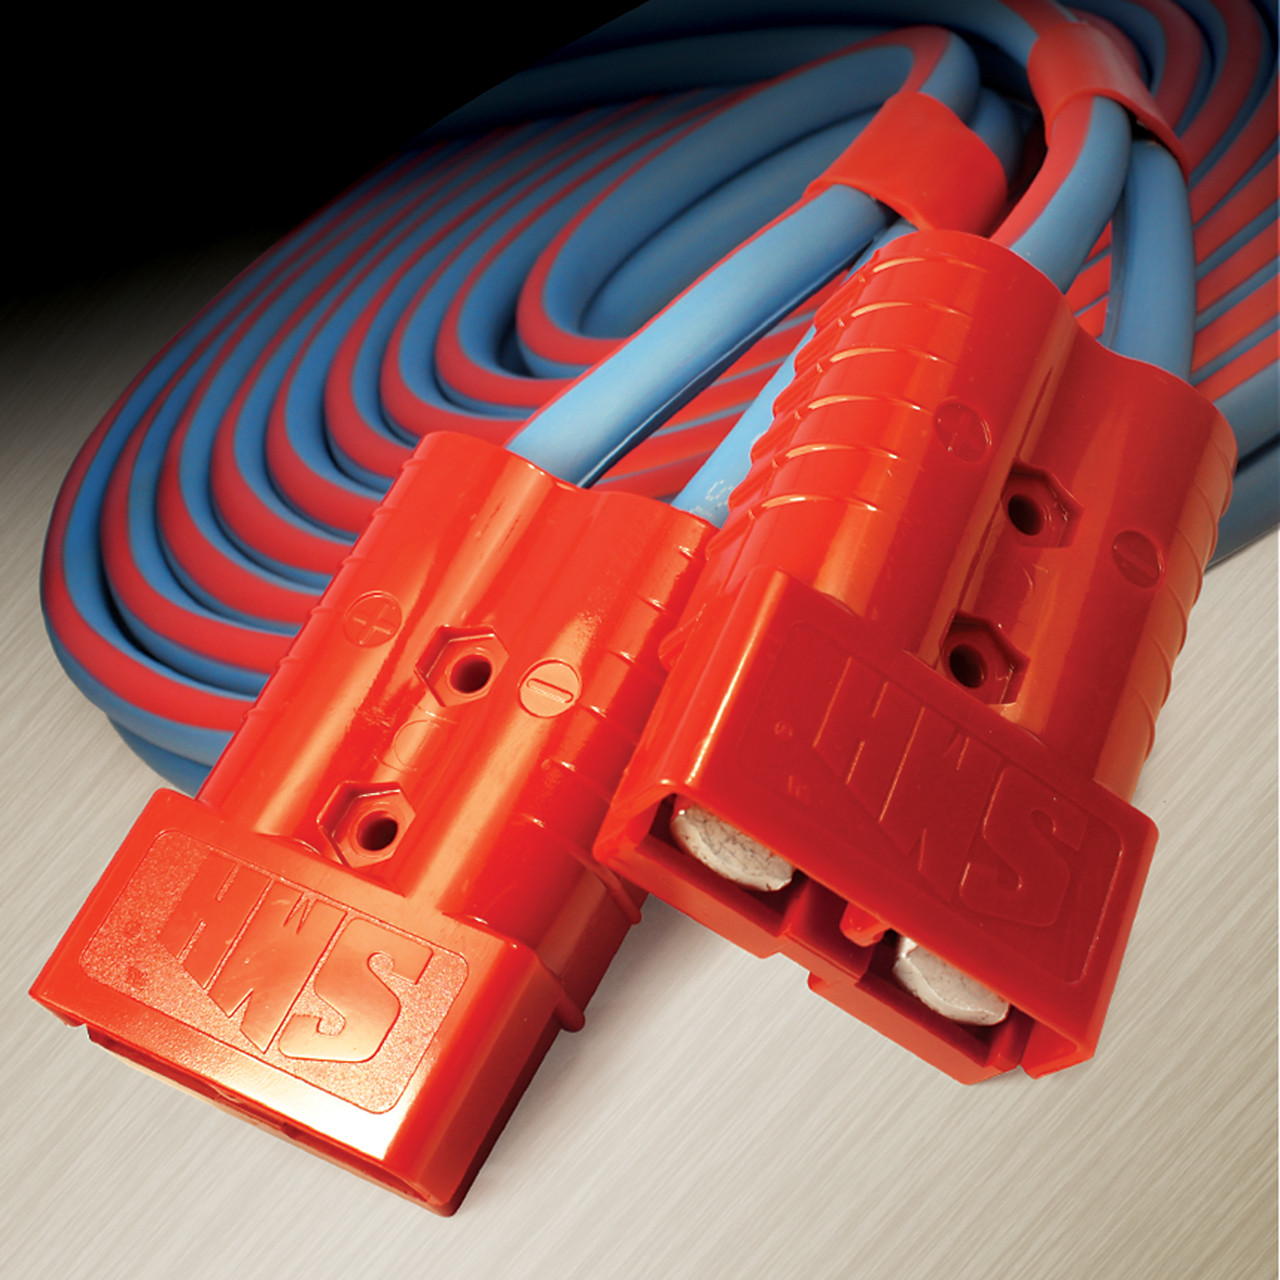 350 amp connectors mate easily and securely